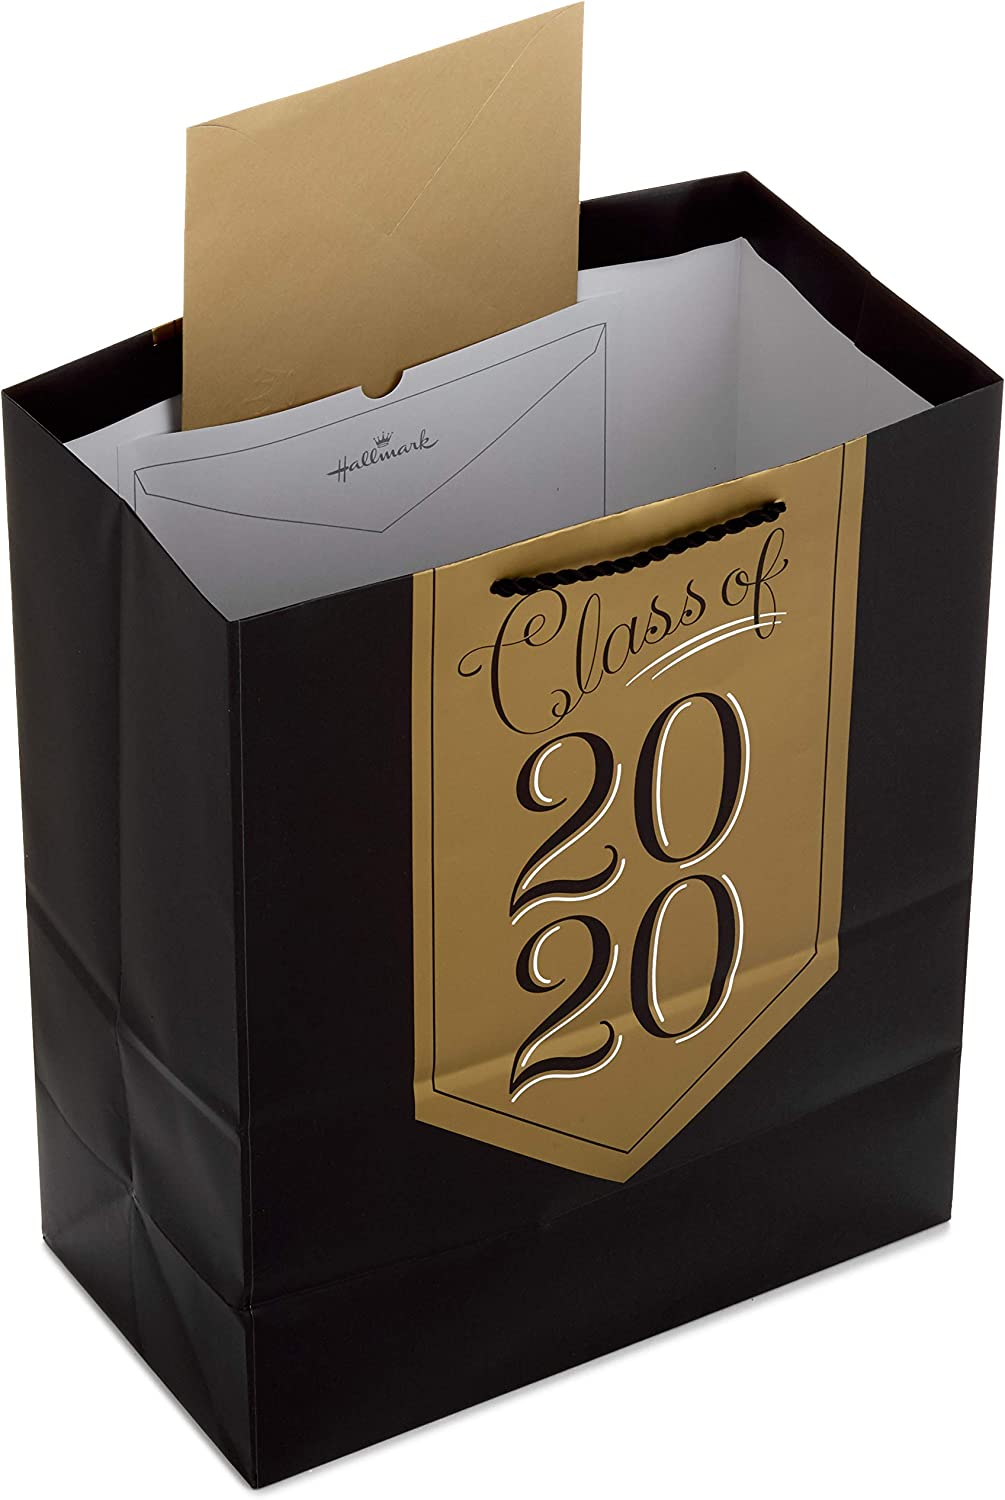 Black Pack of 3: Class of 2020, Congrats, Graduation Caps Hallmark 13 Large Graduation Gift Bags Assortment with Tissue Paper 0005GBC1732